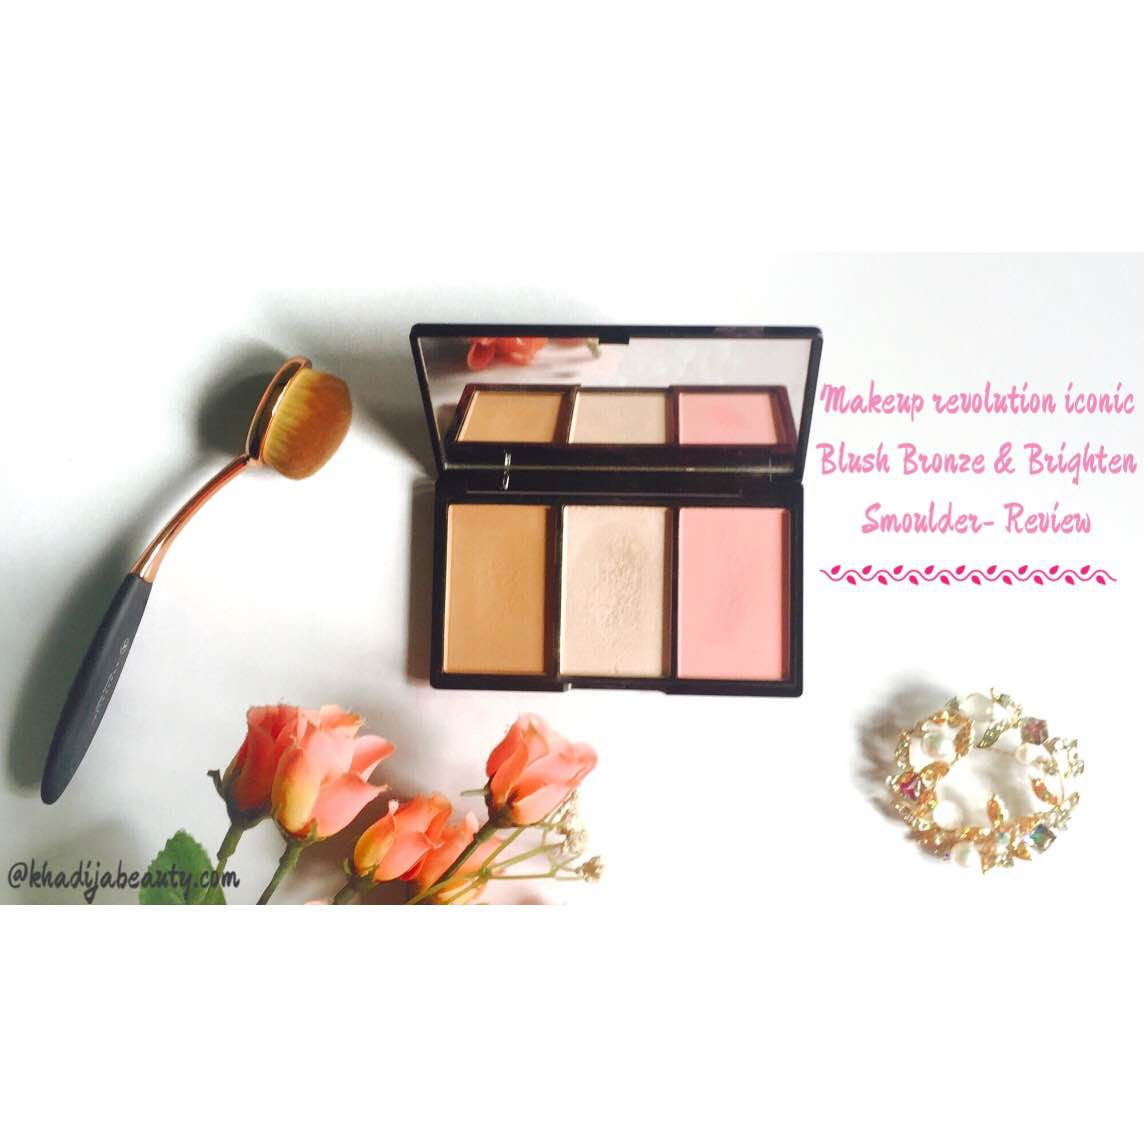 makeup-revolution-iconic-blush-bronze-and-brighten-review-swatches-khadija-beauty